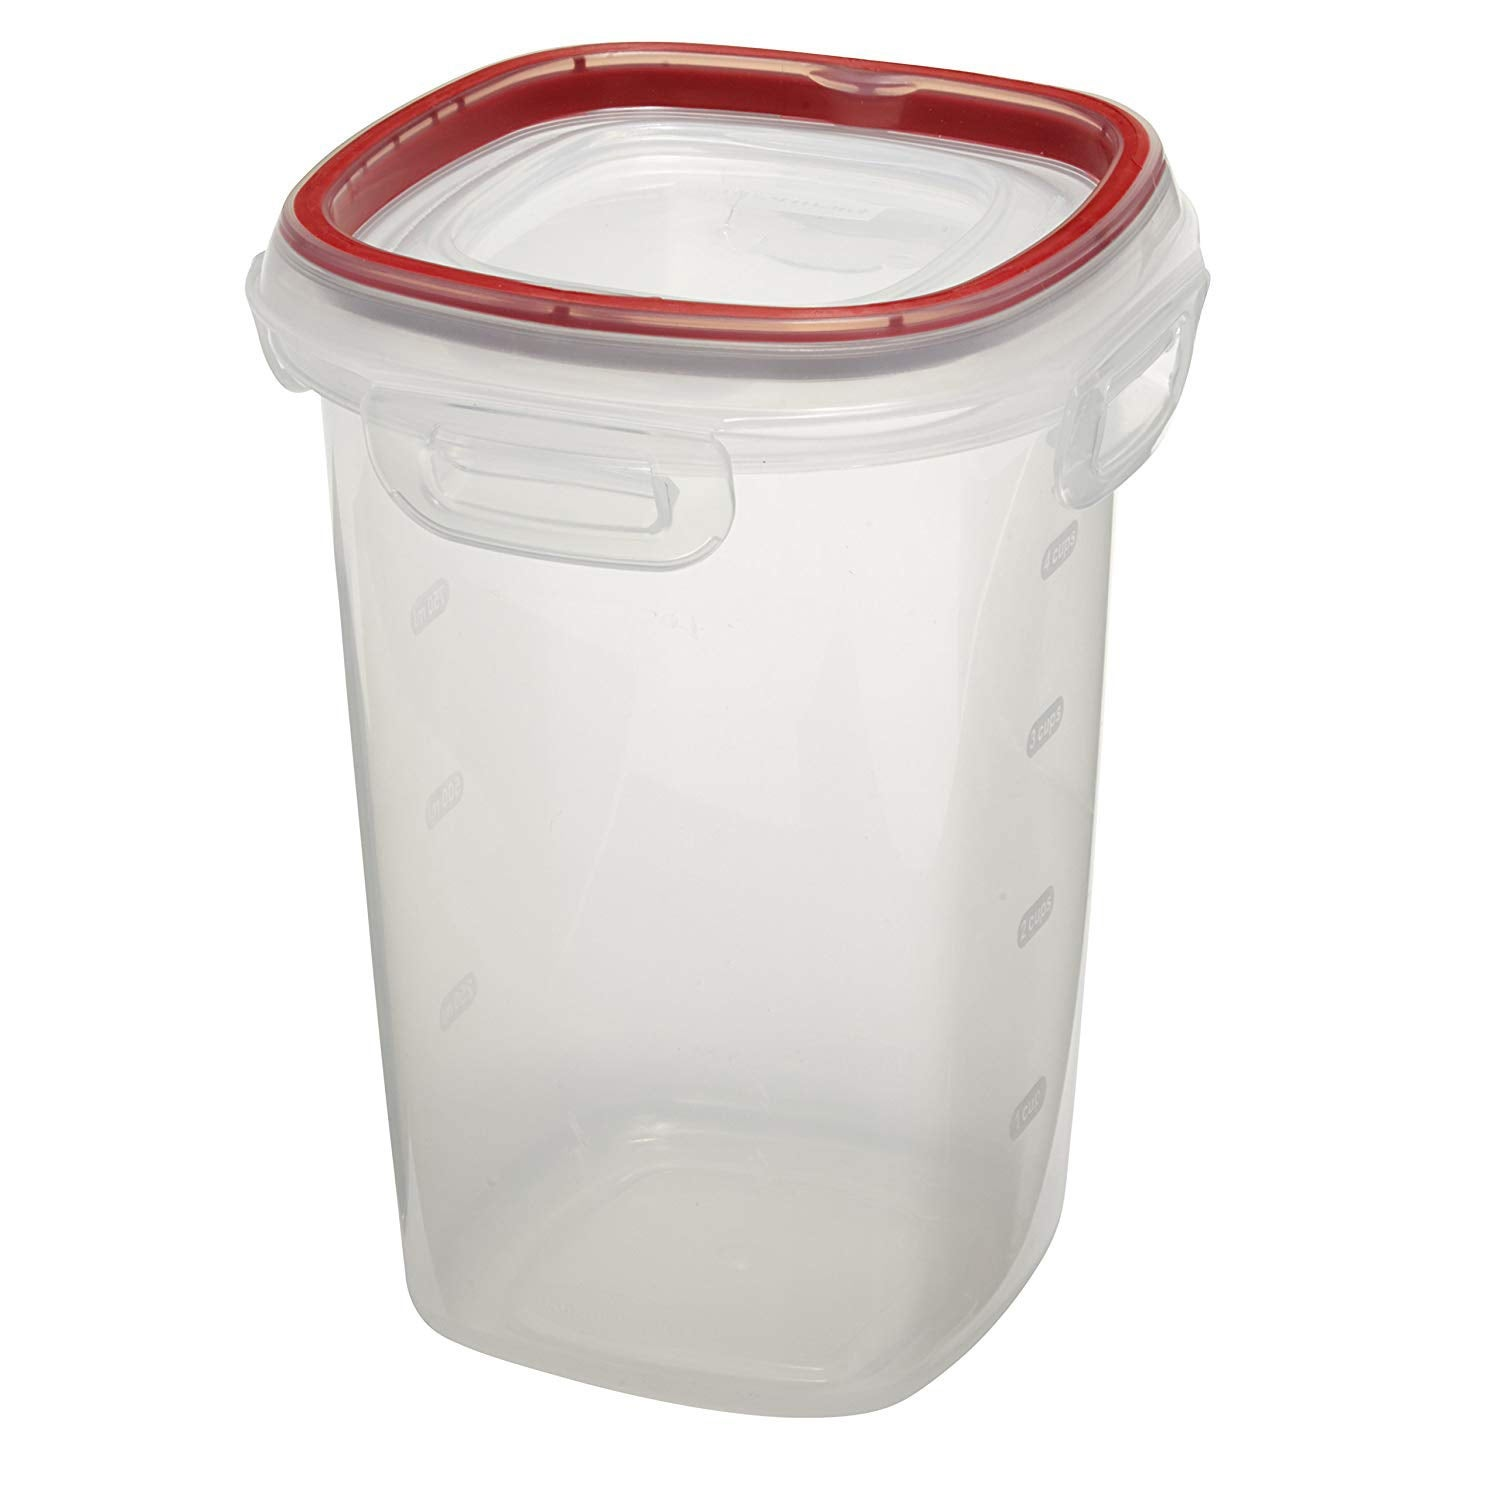 Shop Rubbermaid Lock Its Food Storage Canister With Easy Find Lid